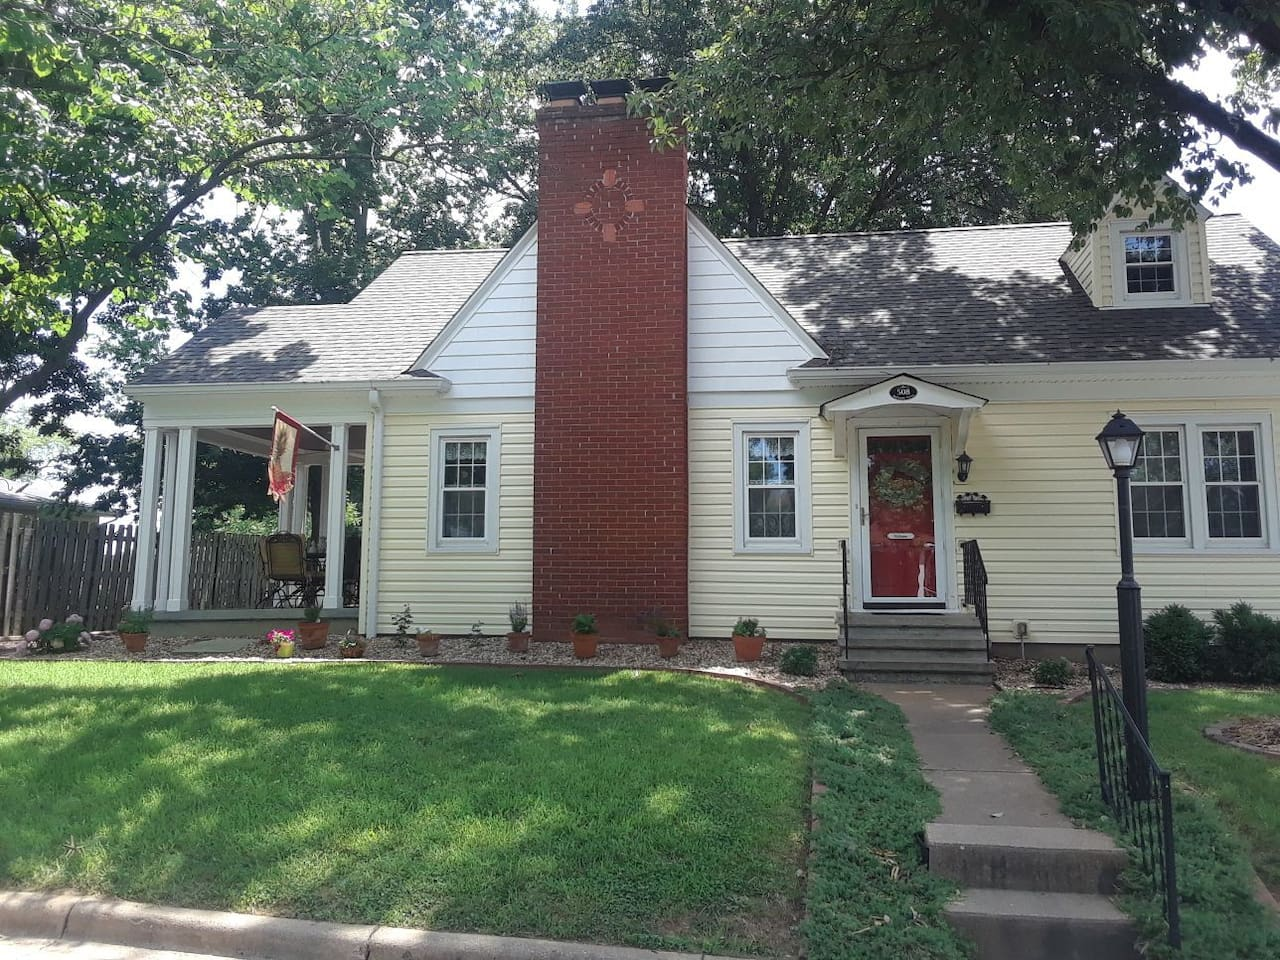 Pheasant Hill Guest House is on a corner lot in a quiet residential neighborhood. The neighbors are welcoming and take pride in their homes and landscaping.